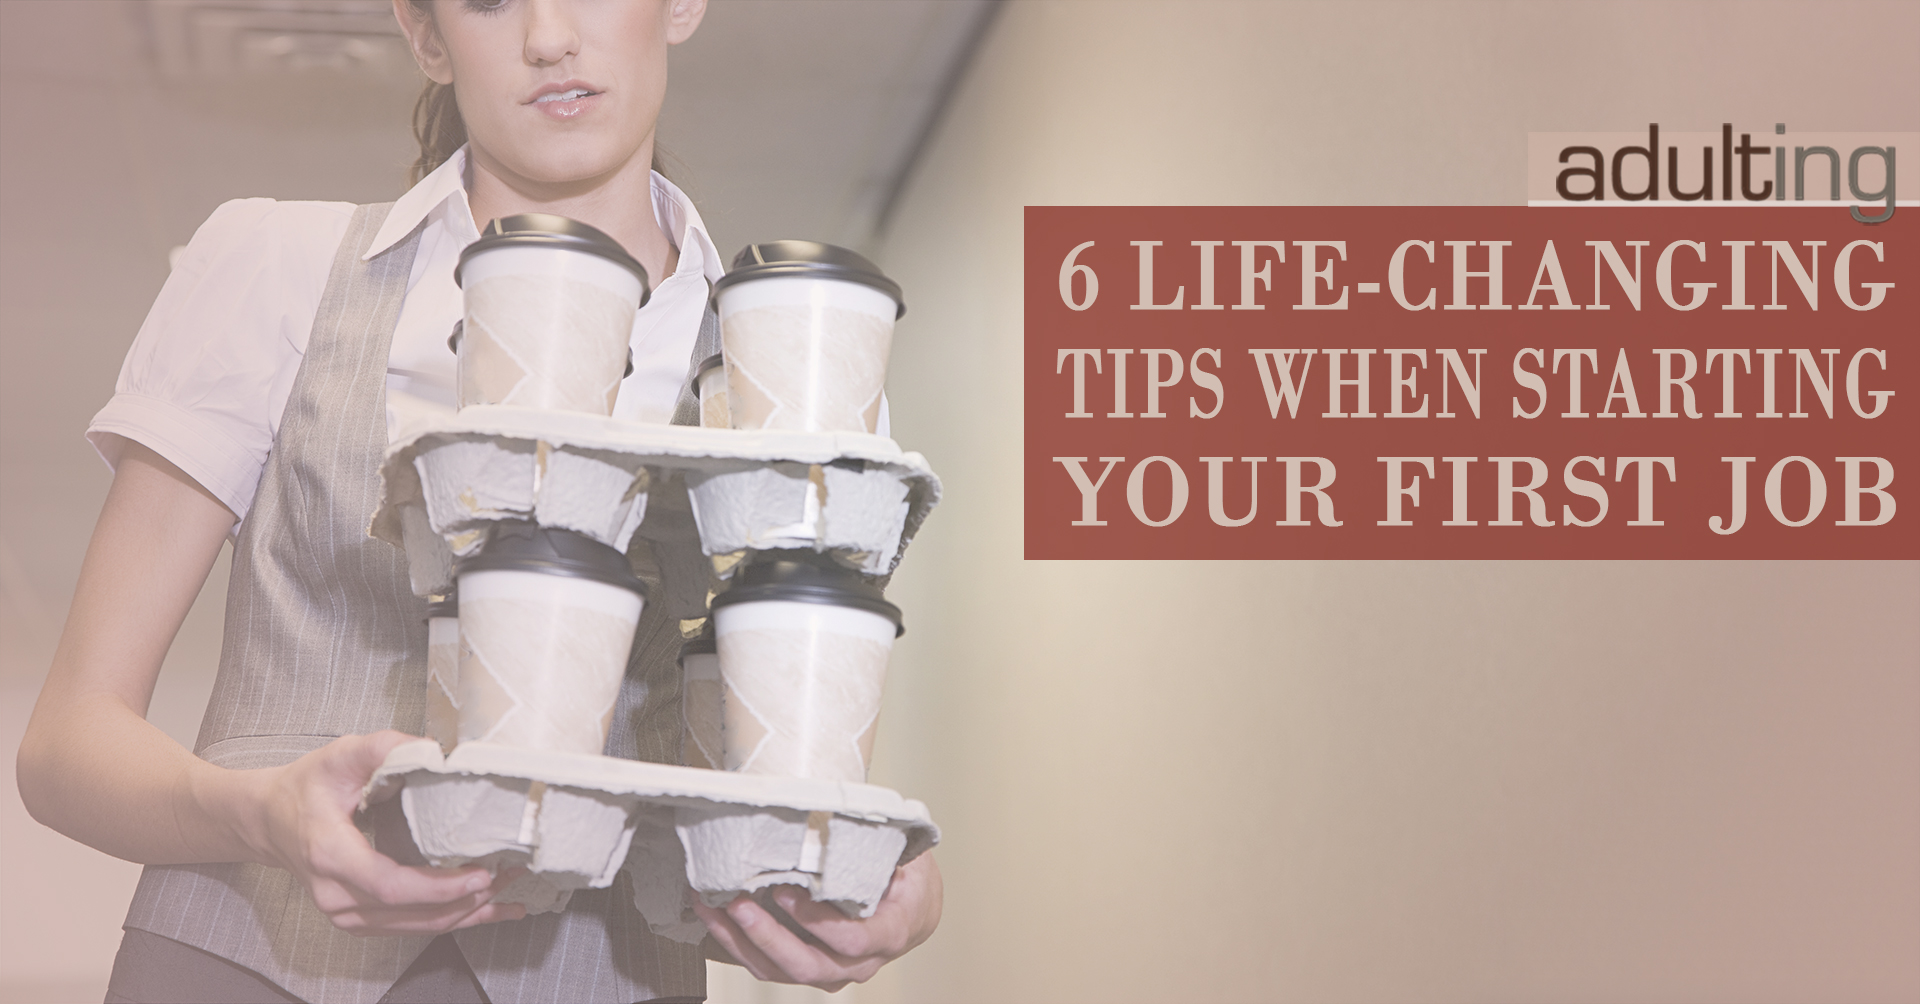 life changing tips when starting your first job adulting